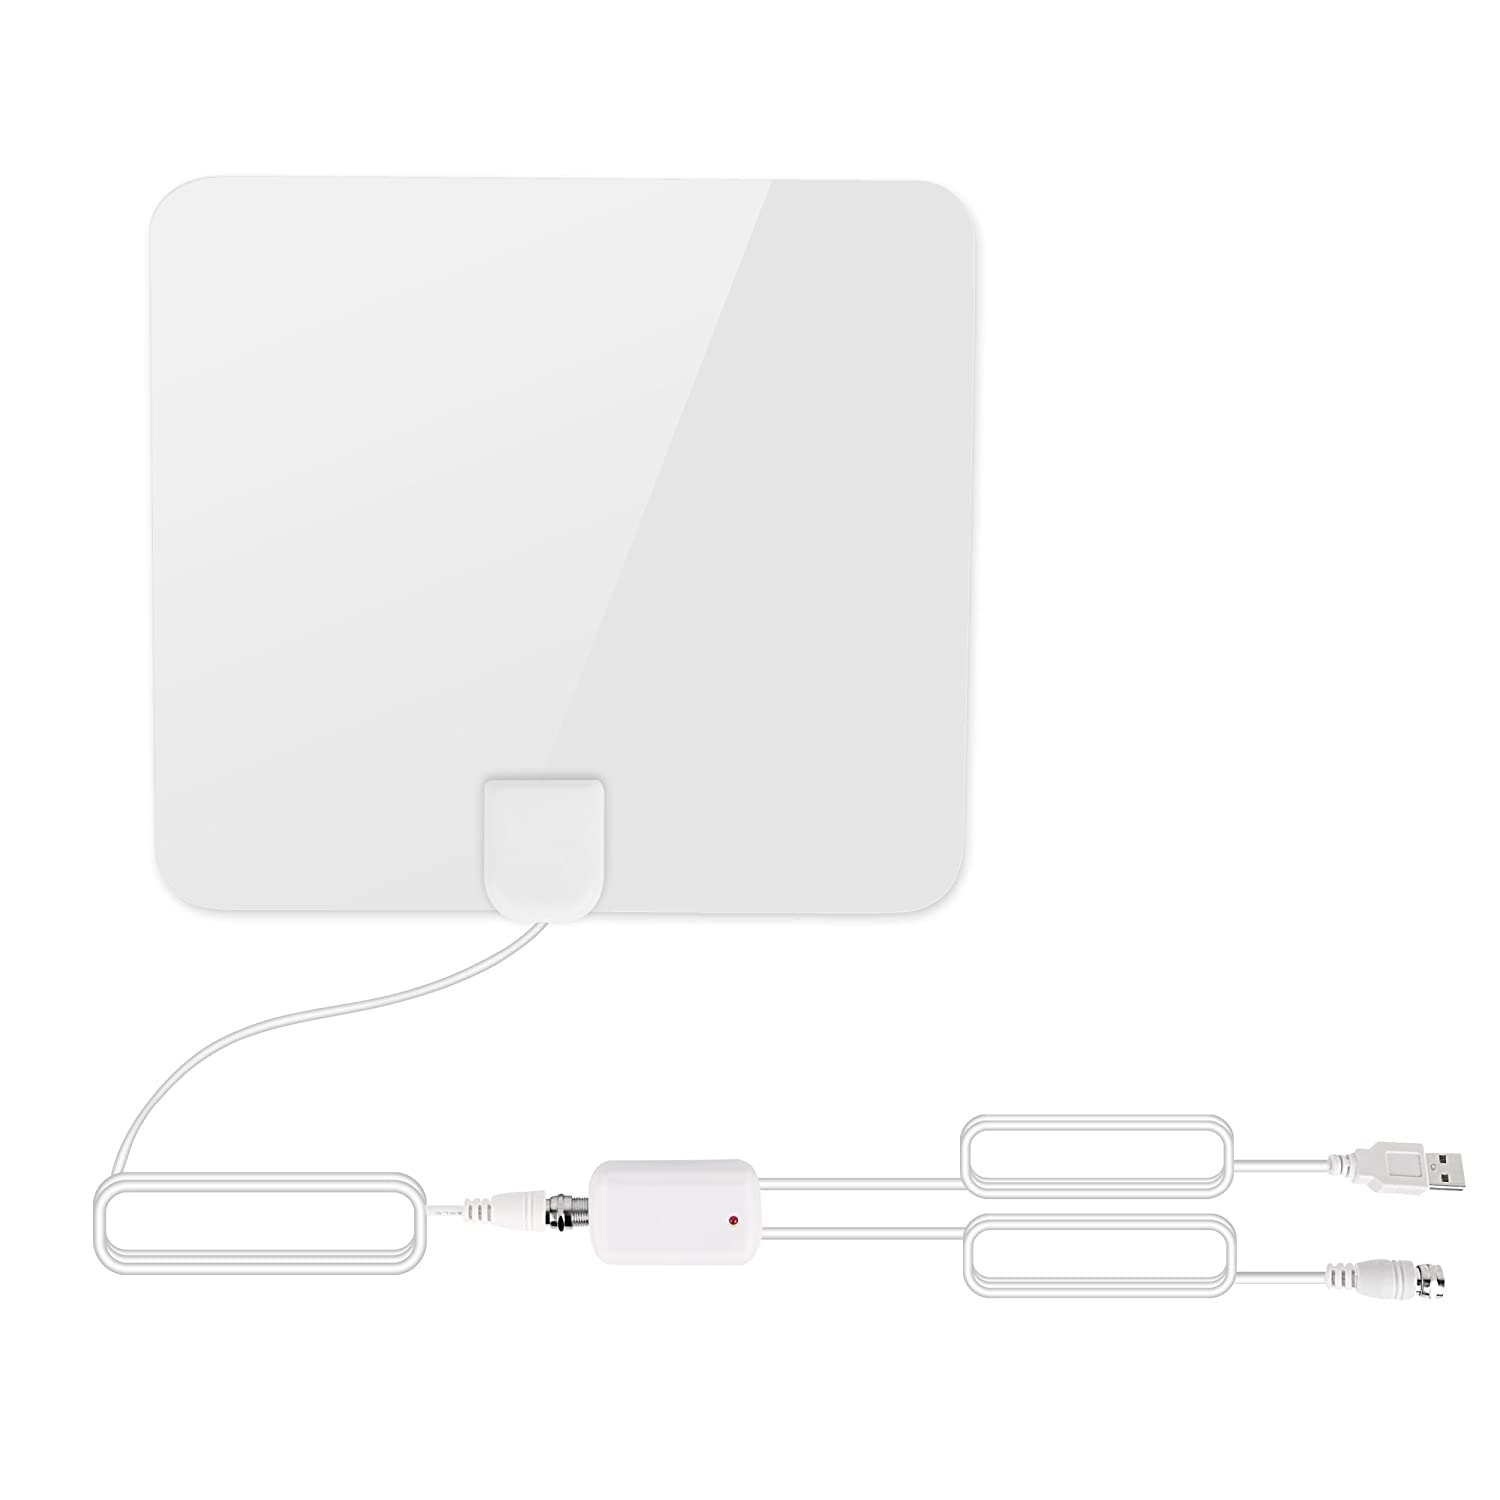 AmYin Digital TV Antenna with Signal Amplifier and 16.3 feet Cable (50 Miles Range, White)